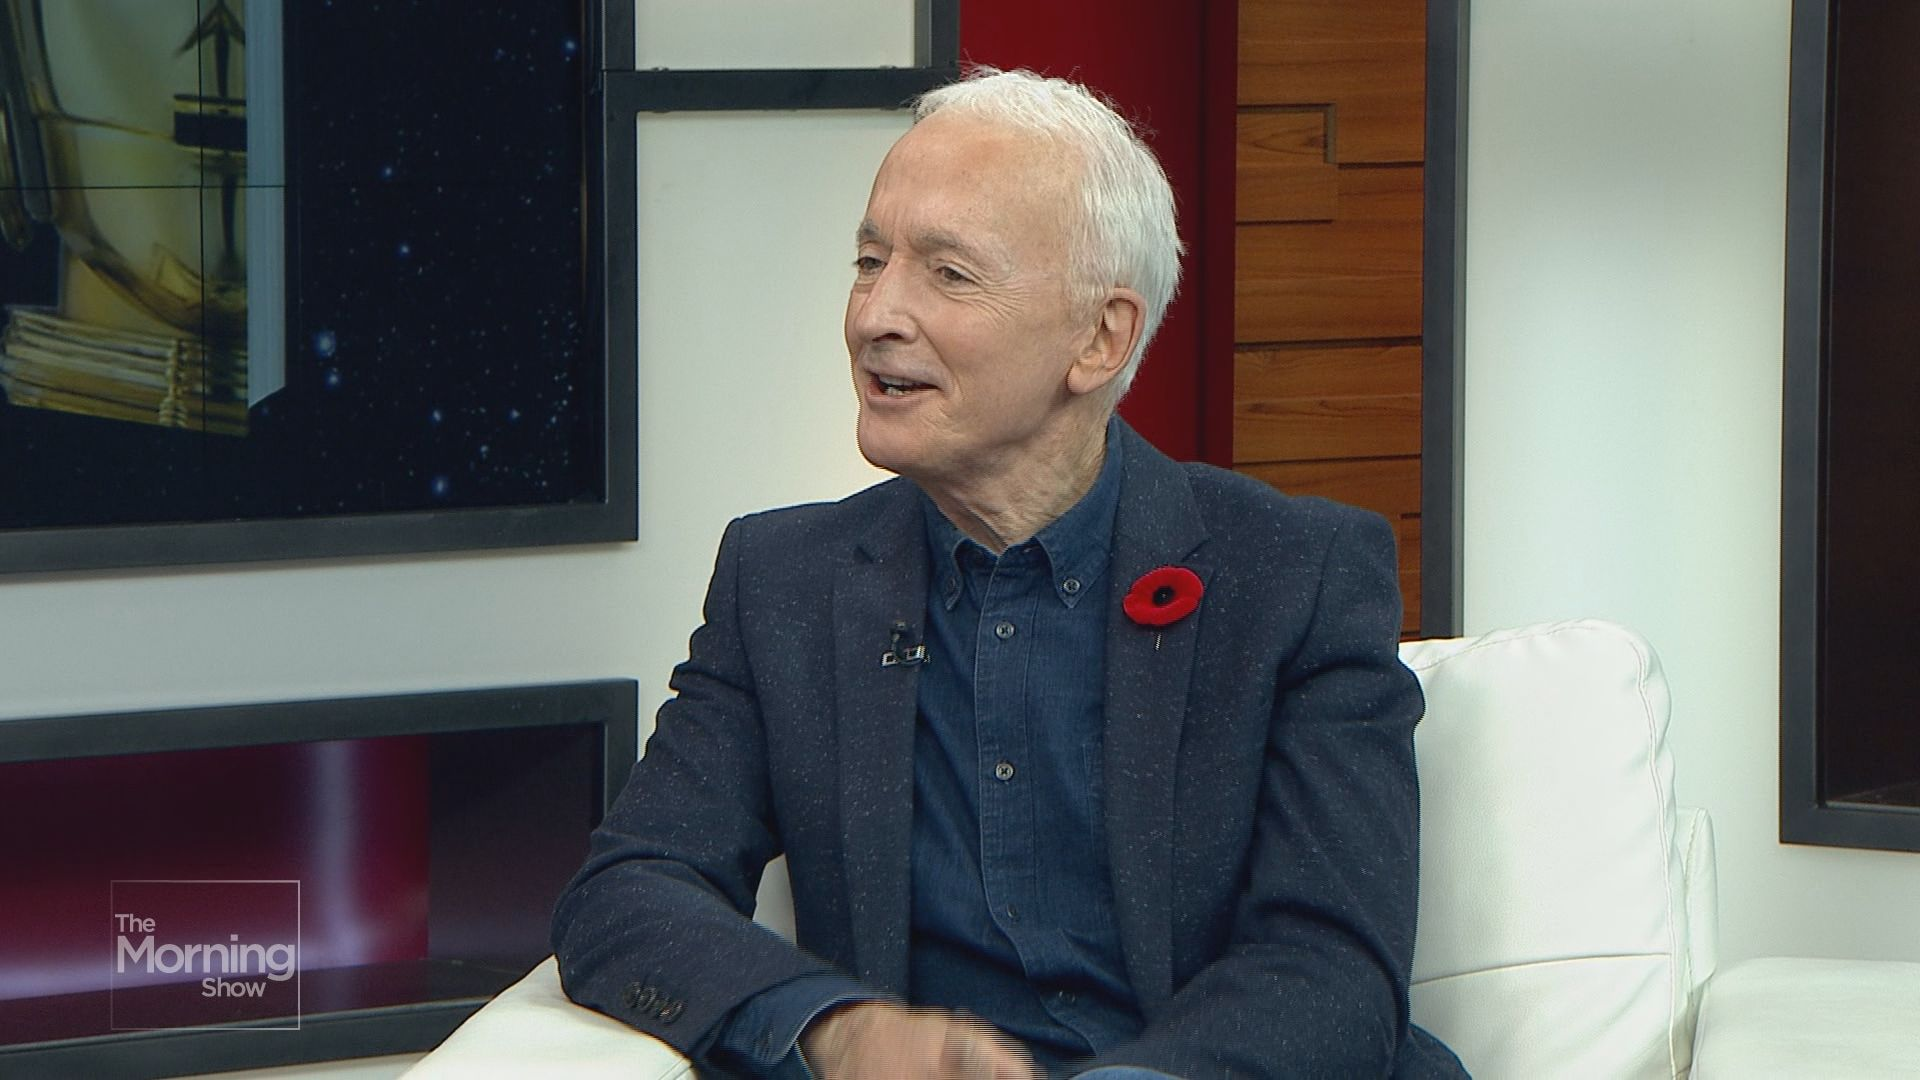 C-3PO actor Anthony Daniels on his new book